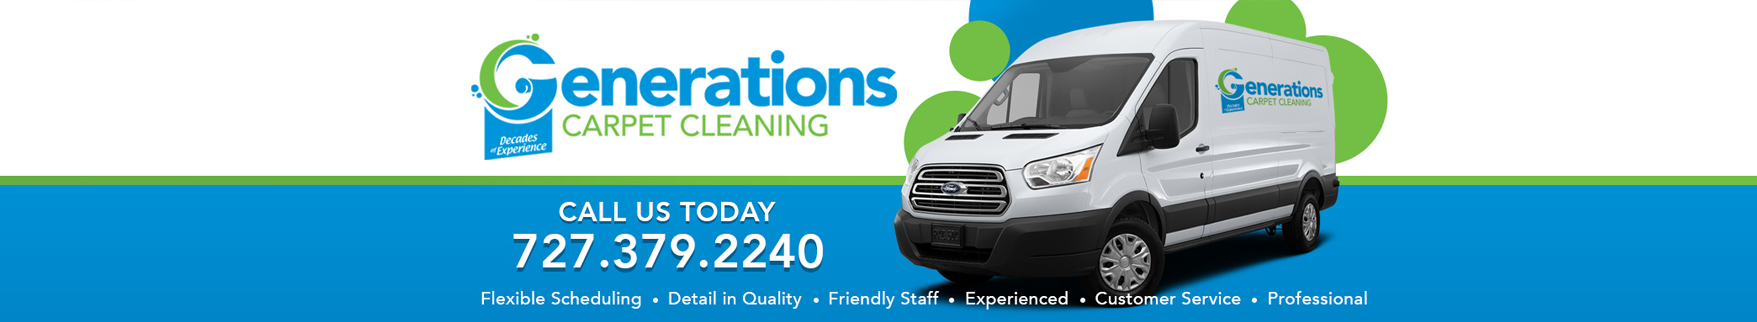 Tampa Bay Carpet Cleaning - Generations Carpet Cleaning